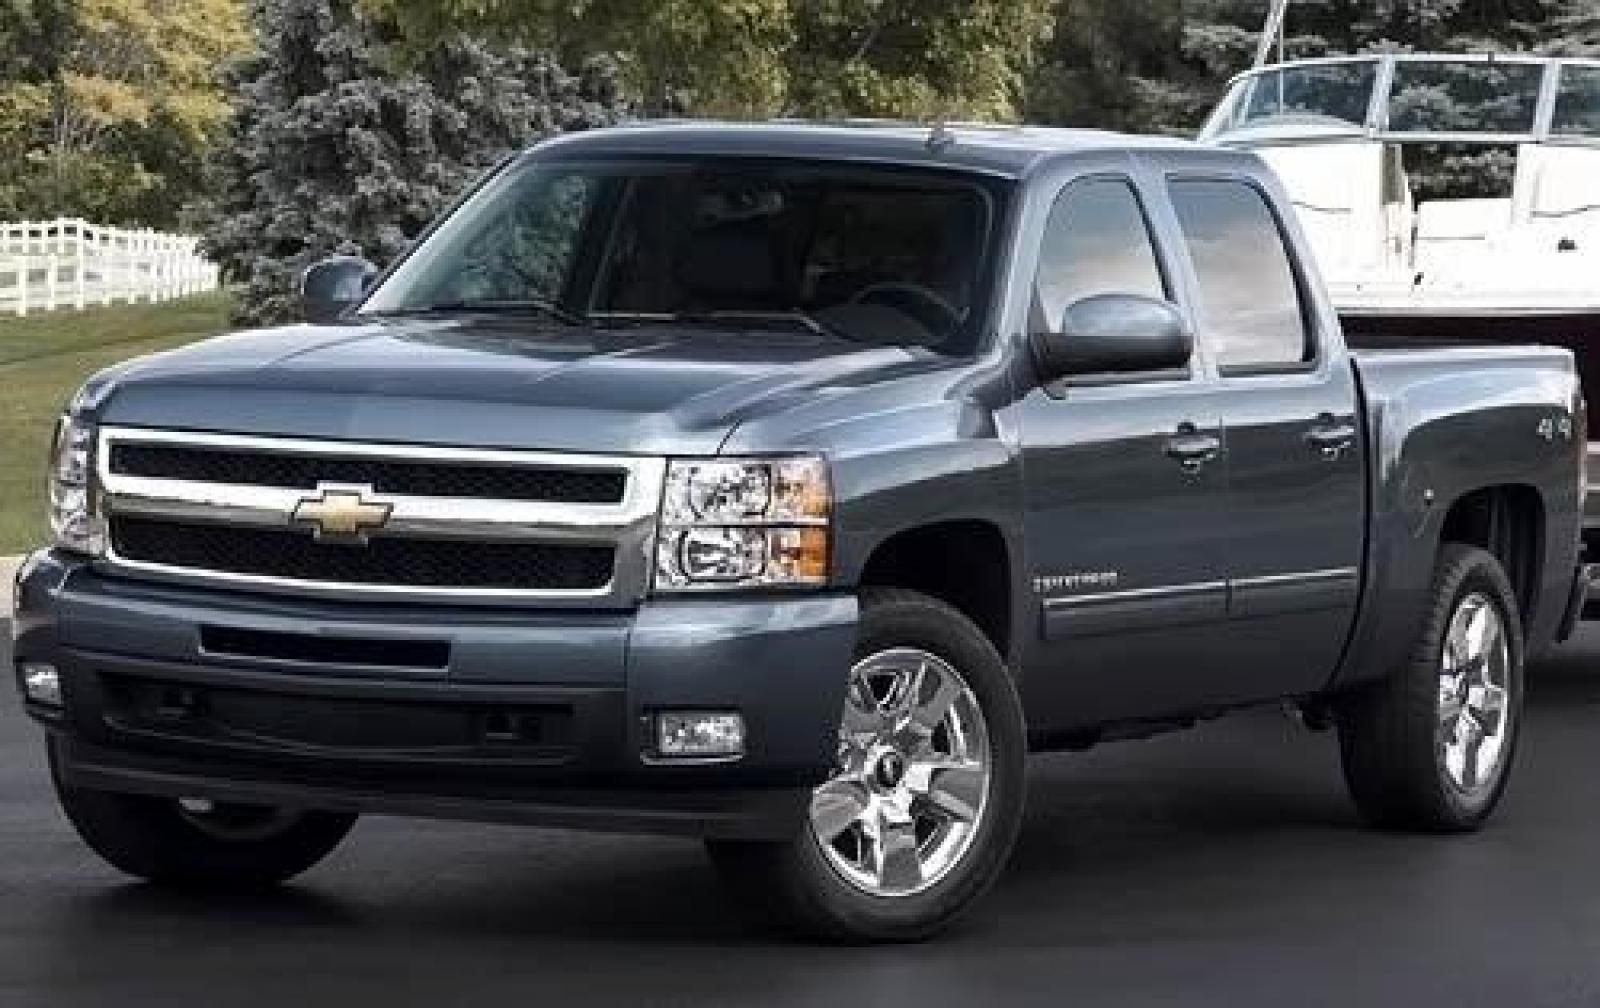 2011 chevrolet silverado 1500 information and photos zombiedrive. Black Bedroom Furniture Sets. Home Design Ideas